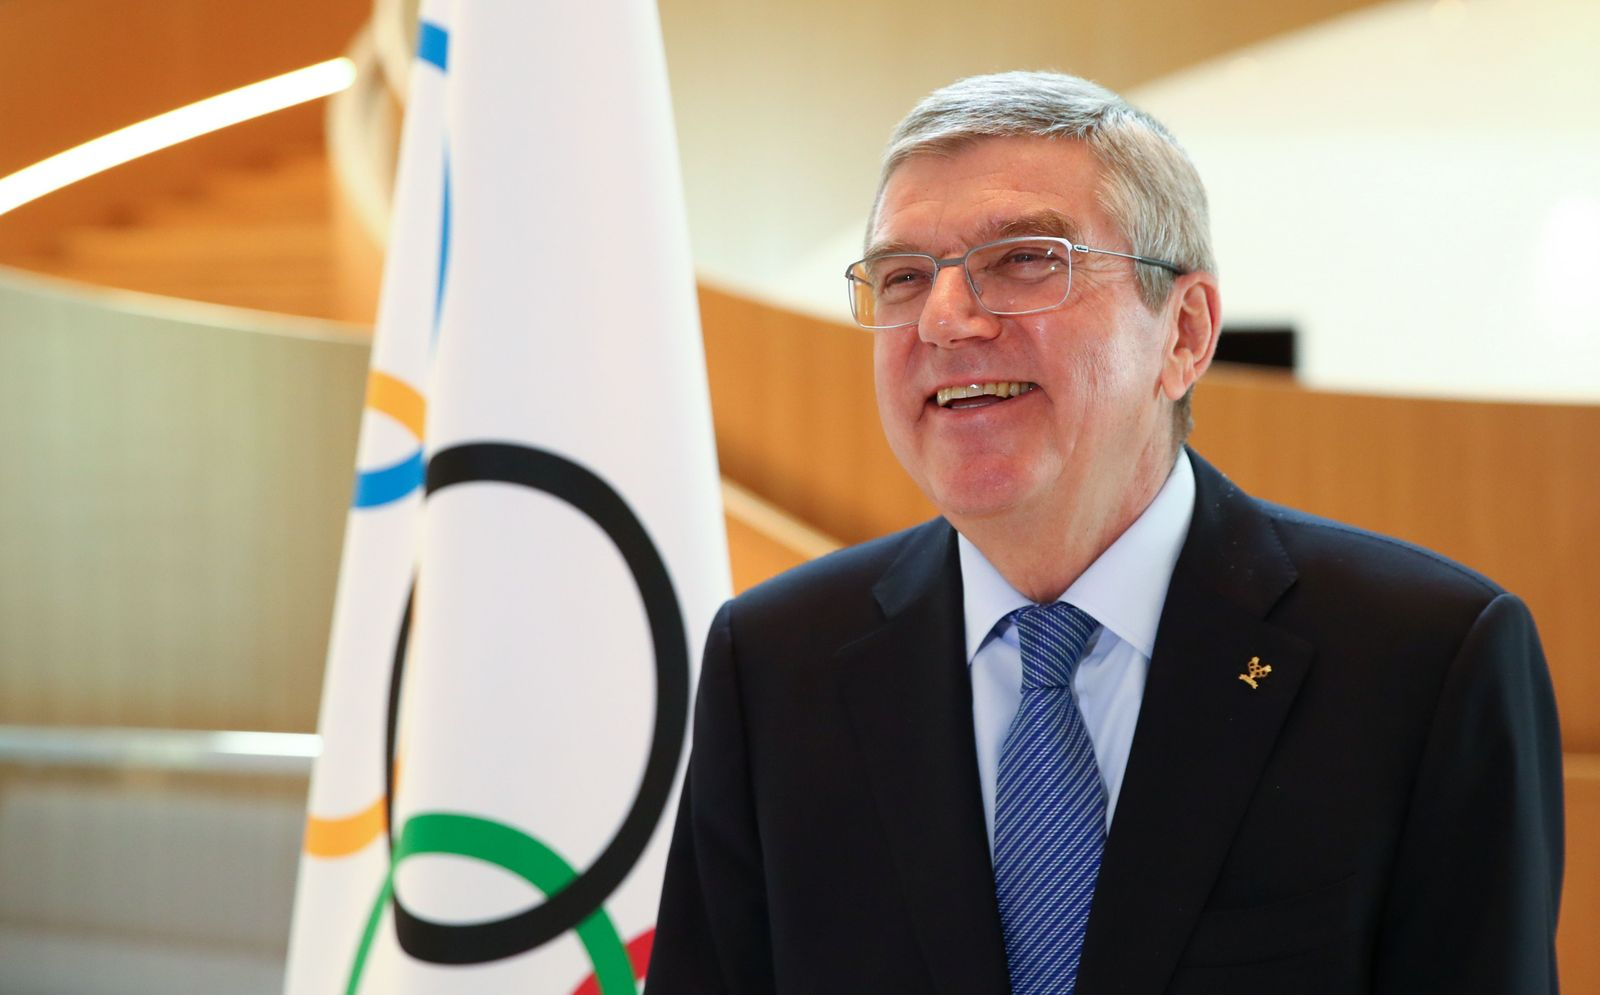 Interview with IOC President Bach after Tokyo 2020 postponement decision, Lausanne, Switzerland - 25 Mar 2020